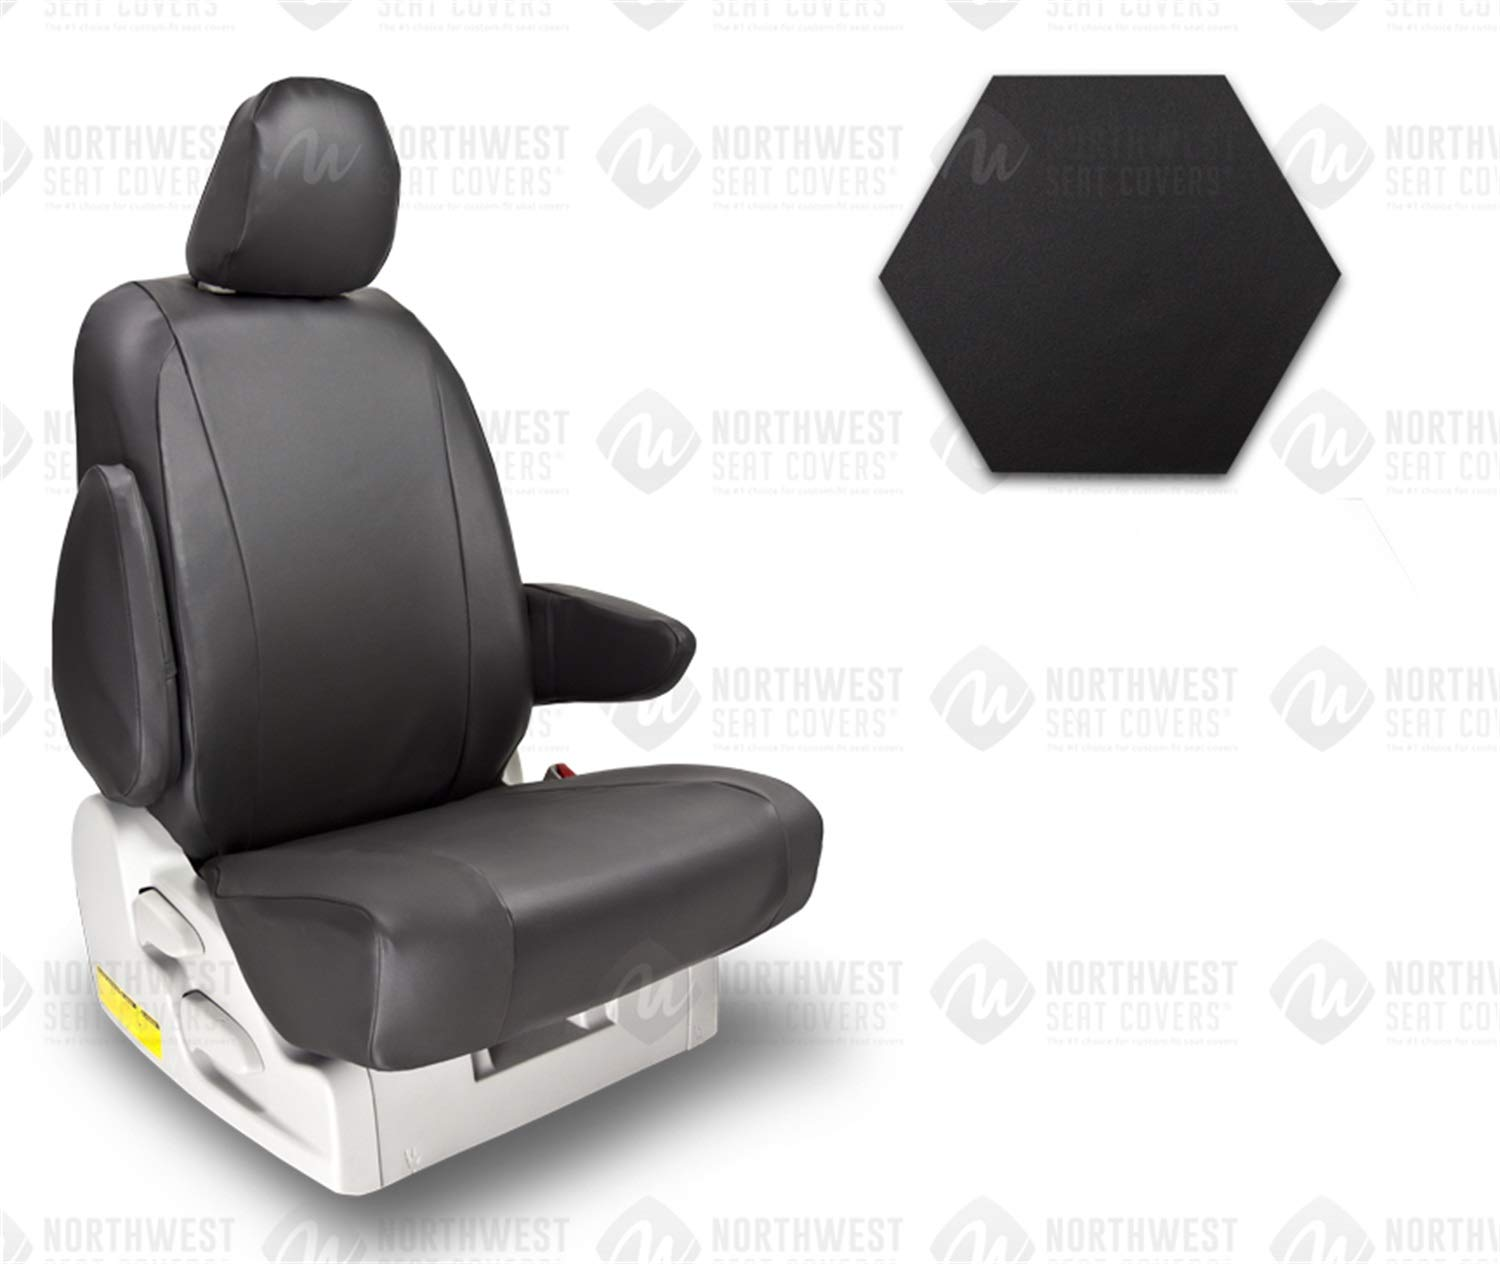 Northwest Seat Covers 1576PR1955 Seat Cover Vinyl Black 40/20/40 Split Bench w/Console w/Mid Cushion Storage Seat Cover